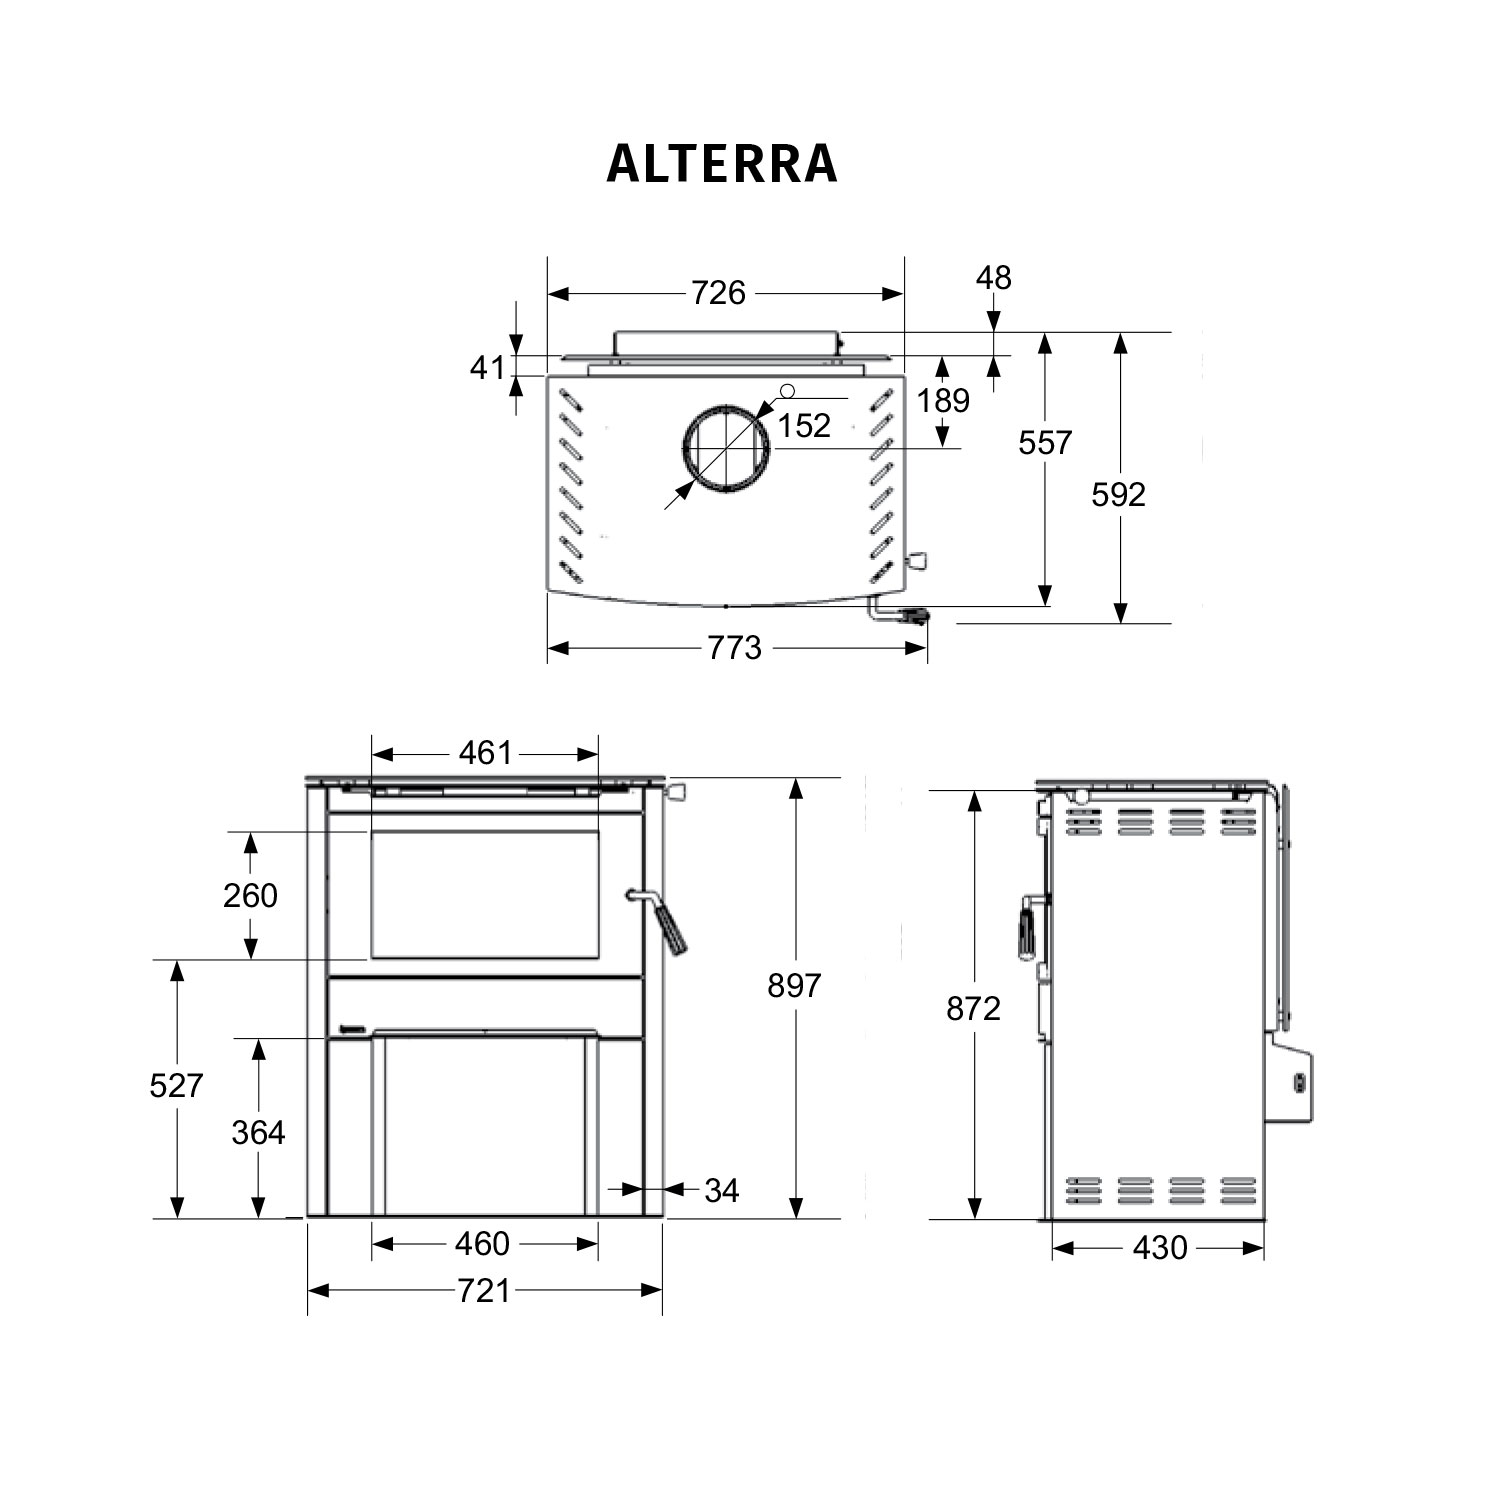 Regency Alterra dimensions and specifications